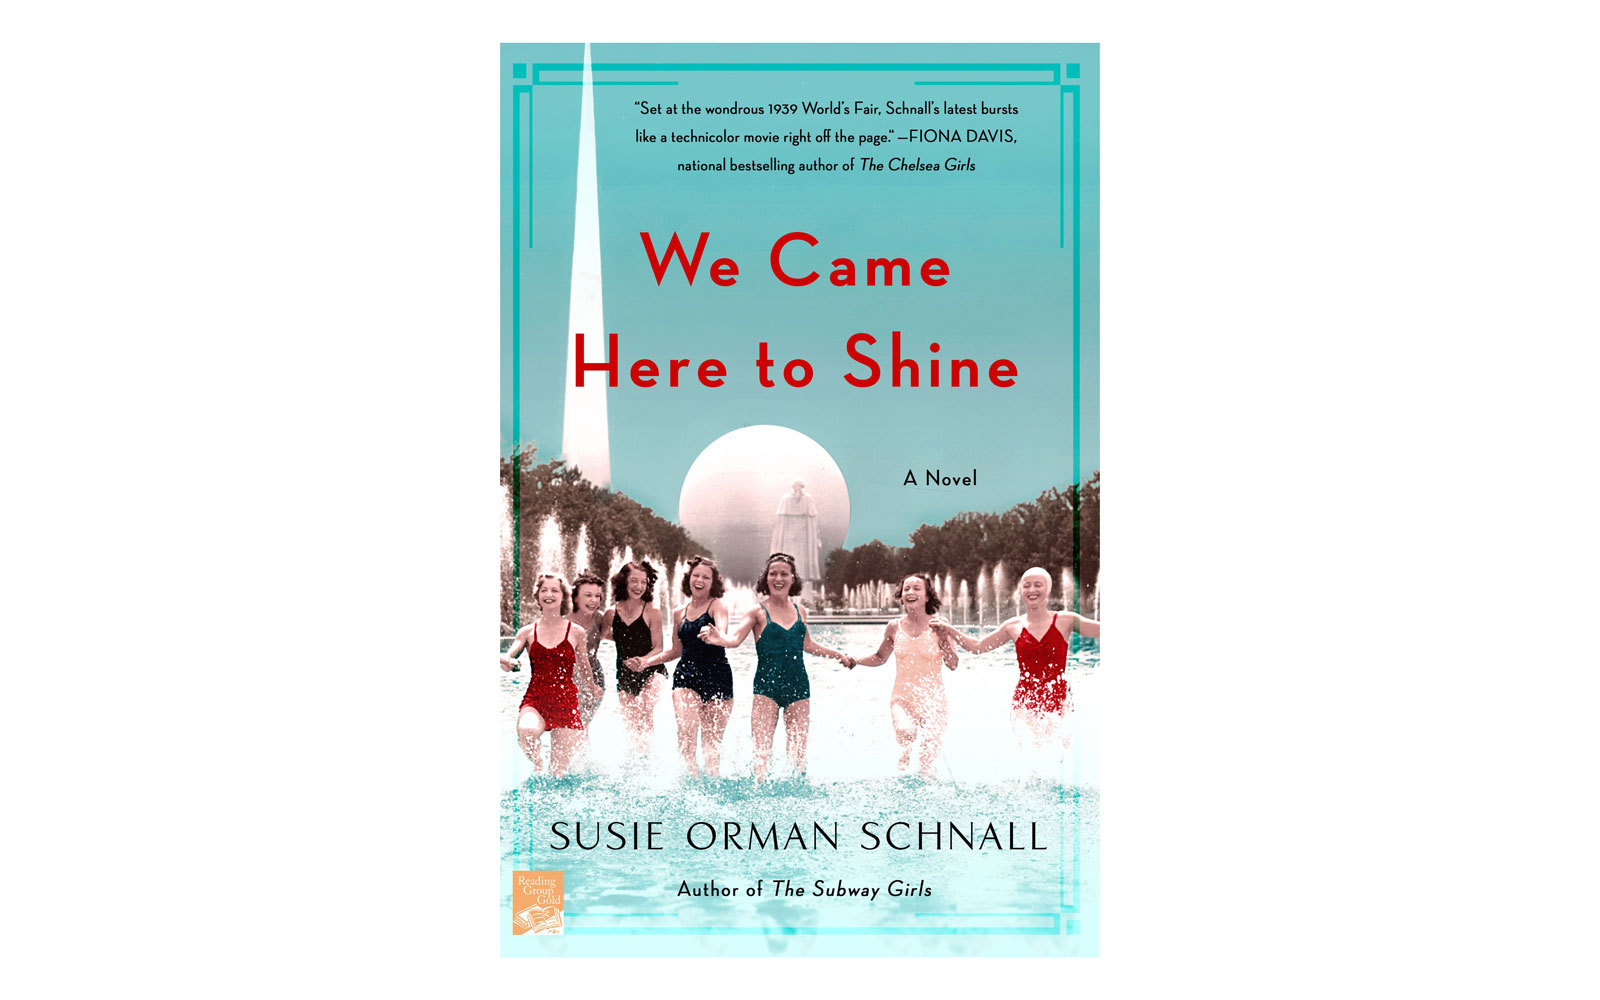 We Came Here to Shine book